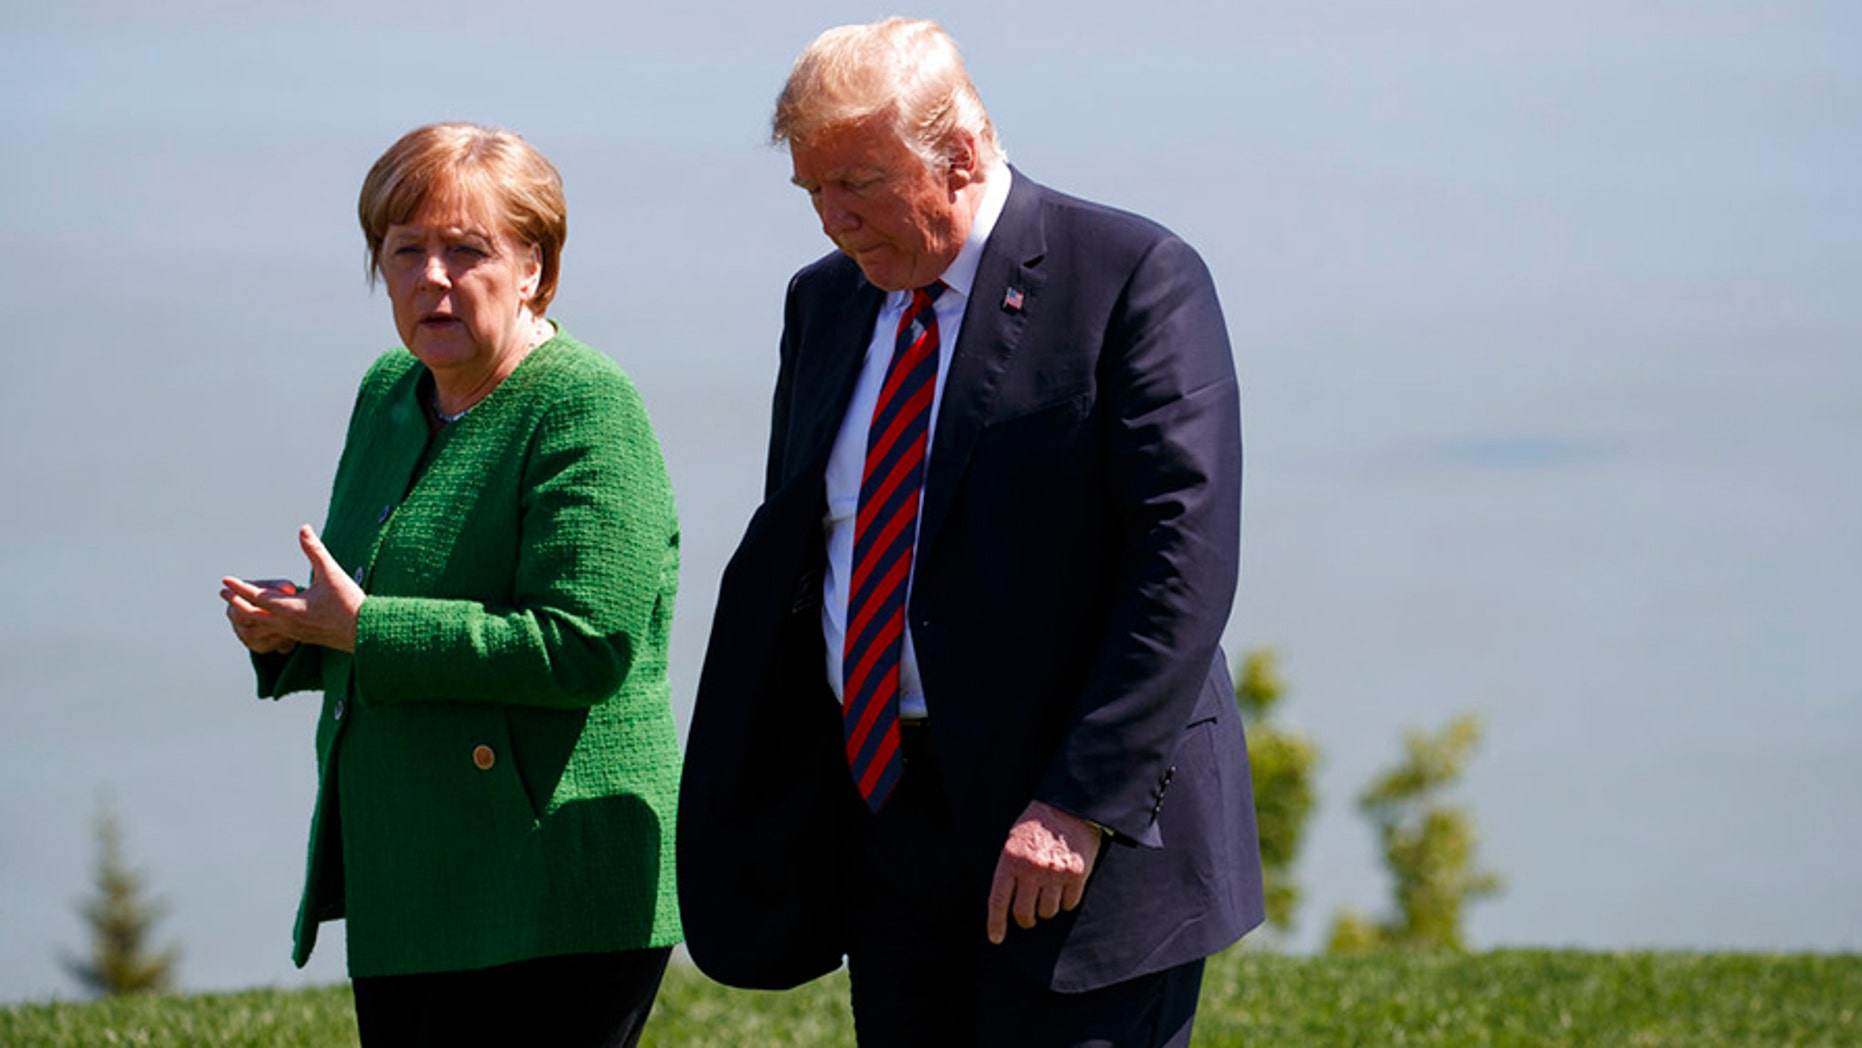 President Donald Trump, right, talks with German Chancellor Angela Merkel after the family photo during the G7 Summit, Friday, June 8, 2018, in Charlevoix, Canada. (AP Photo/Evan Vucci)